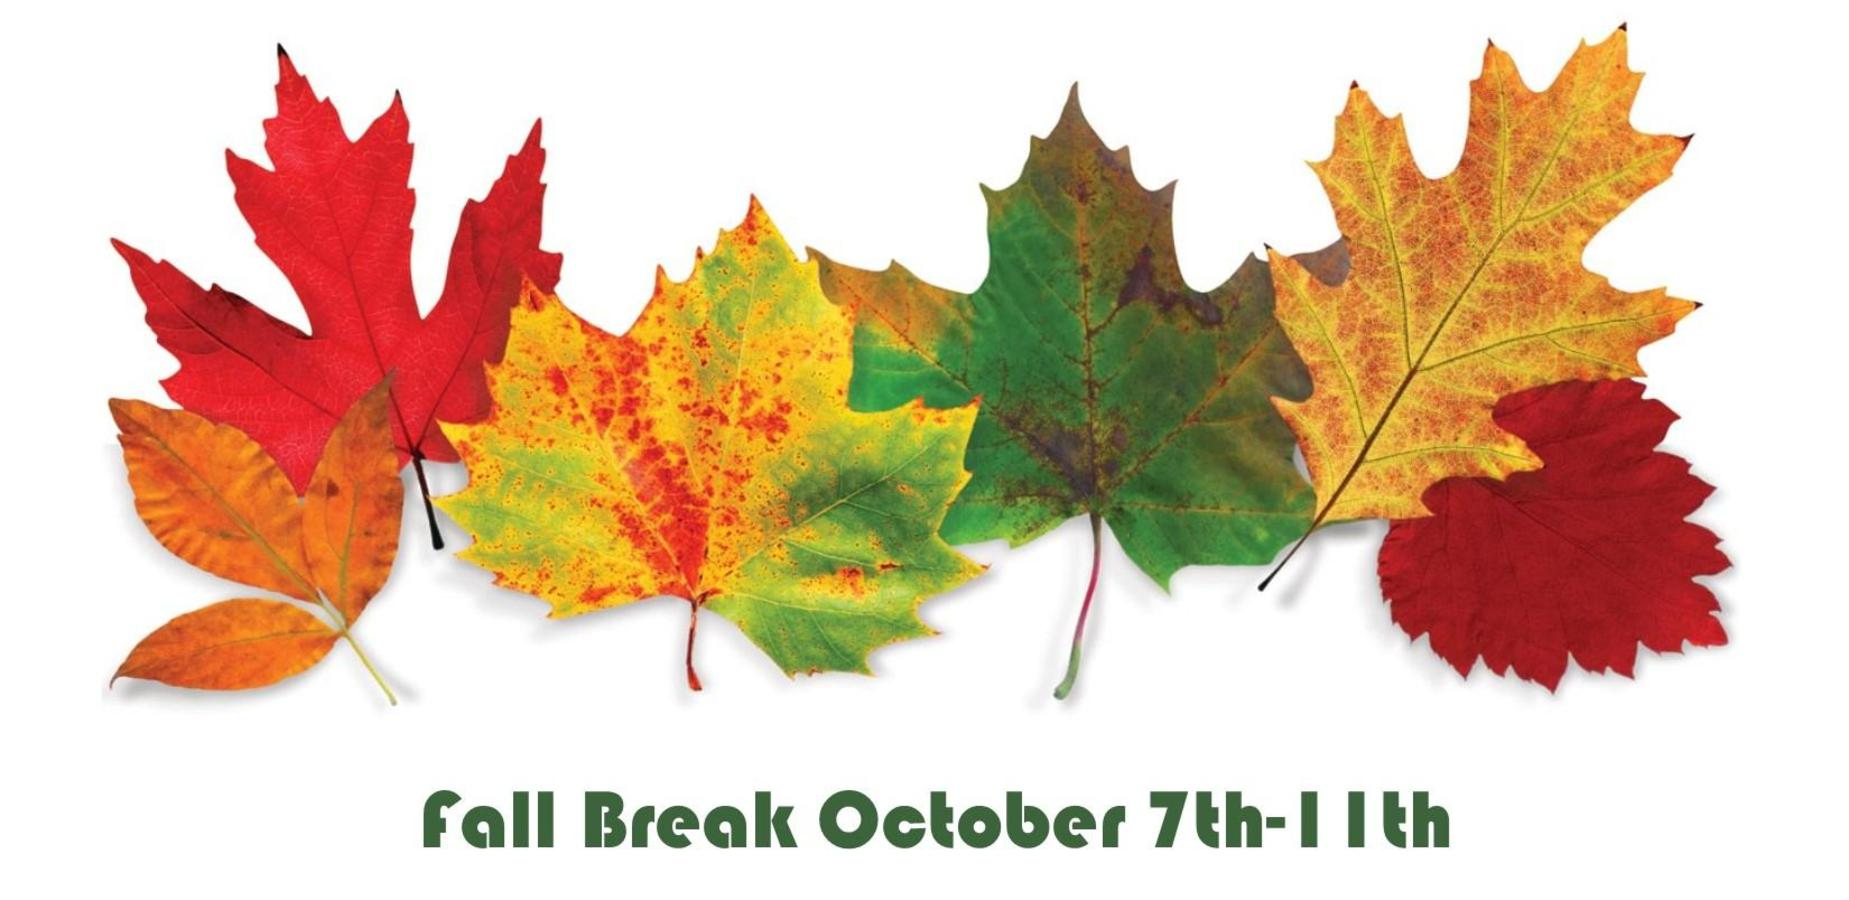 Fall Break October 7th-11th